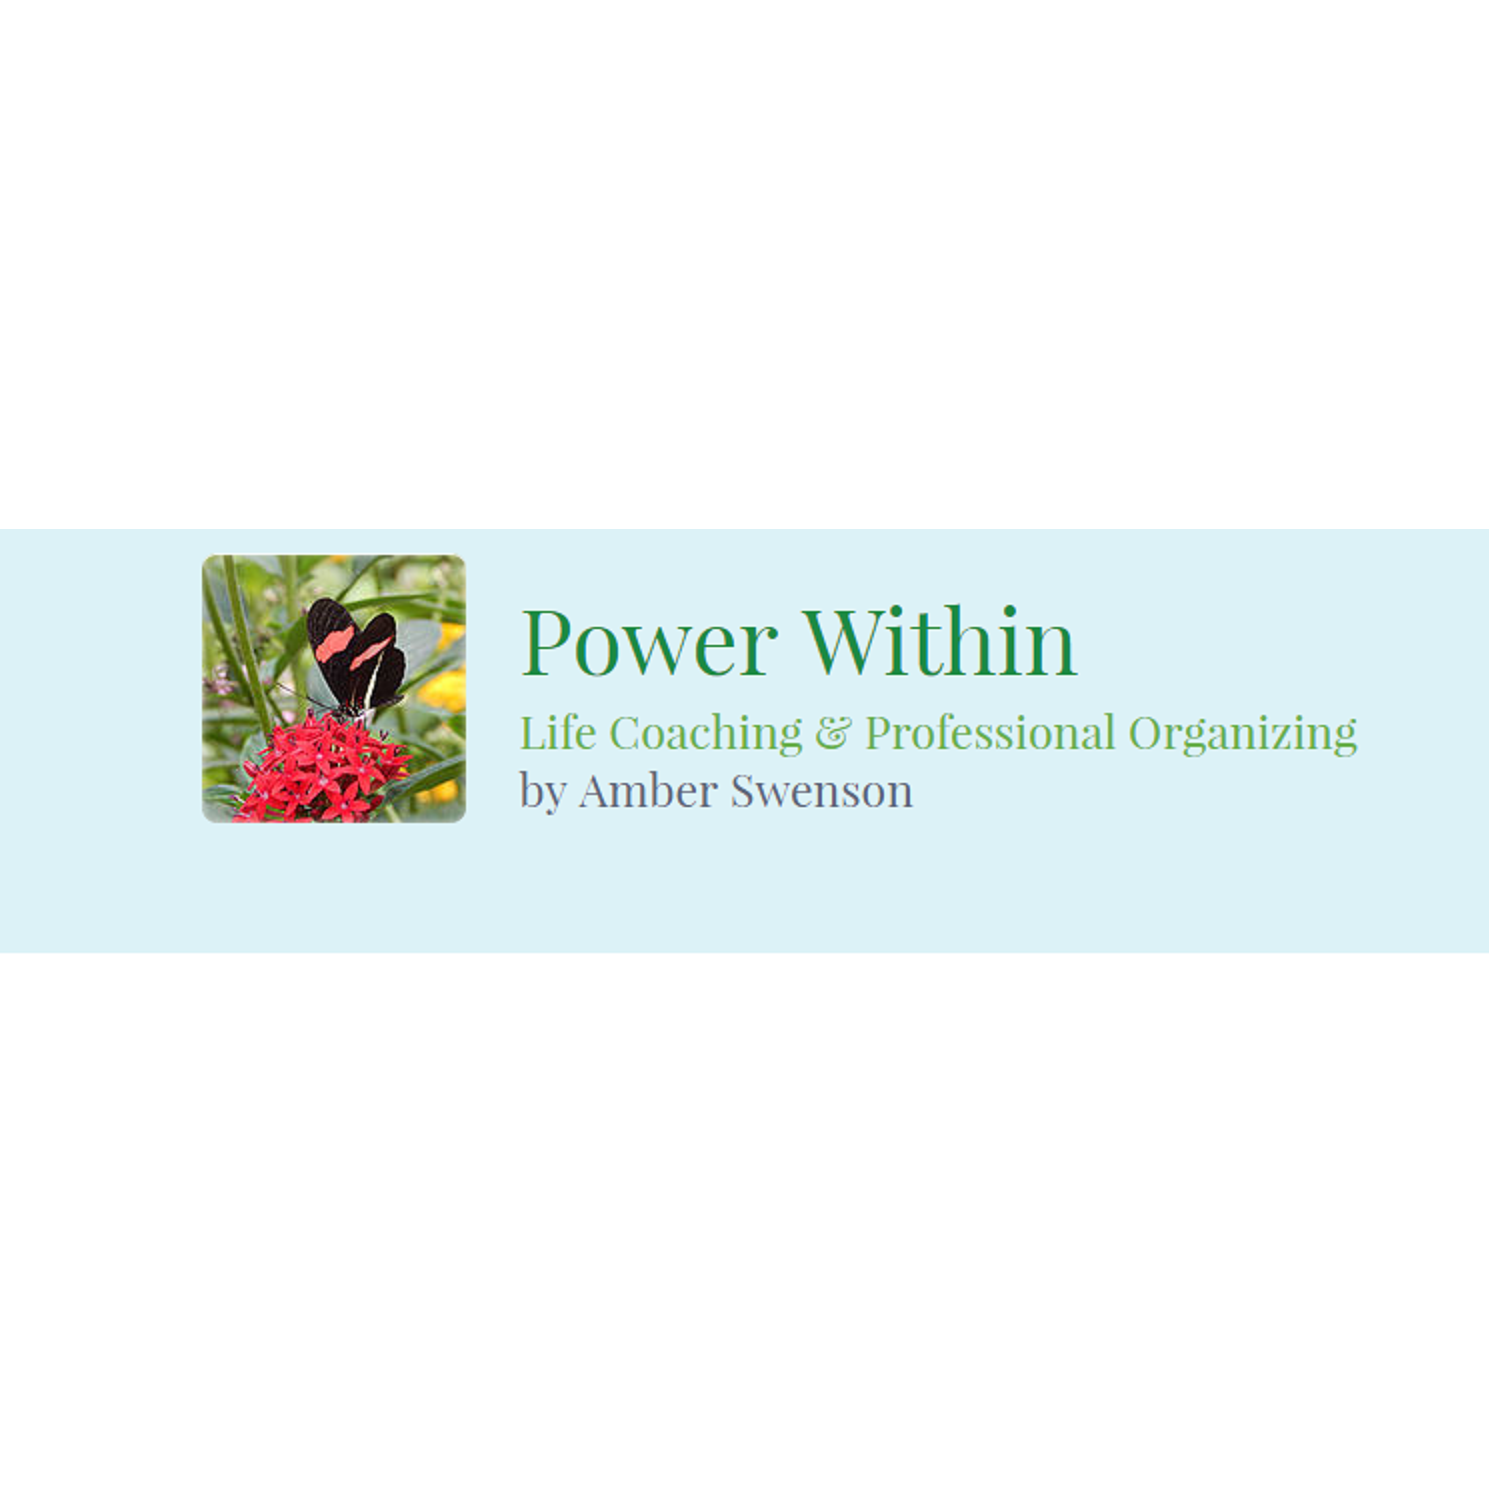 Power Within Life Coaching and Professional Organizing - Amherst, NH 03031 - (603)879-0220 | ShowMeLocal.com